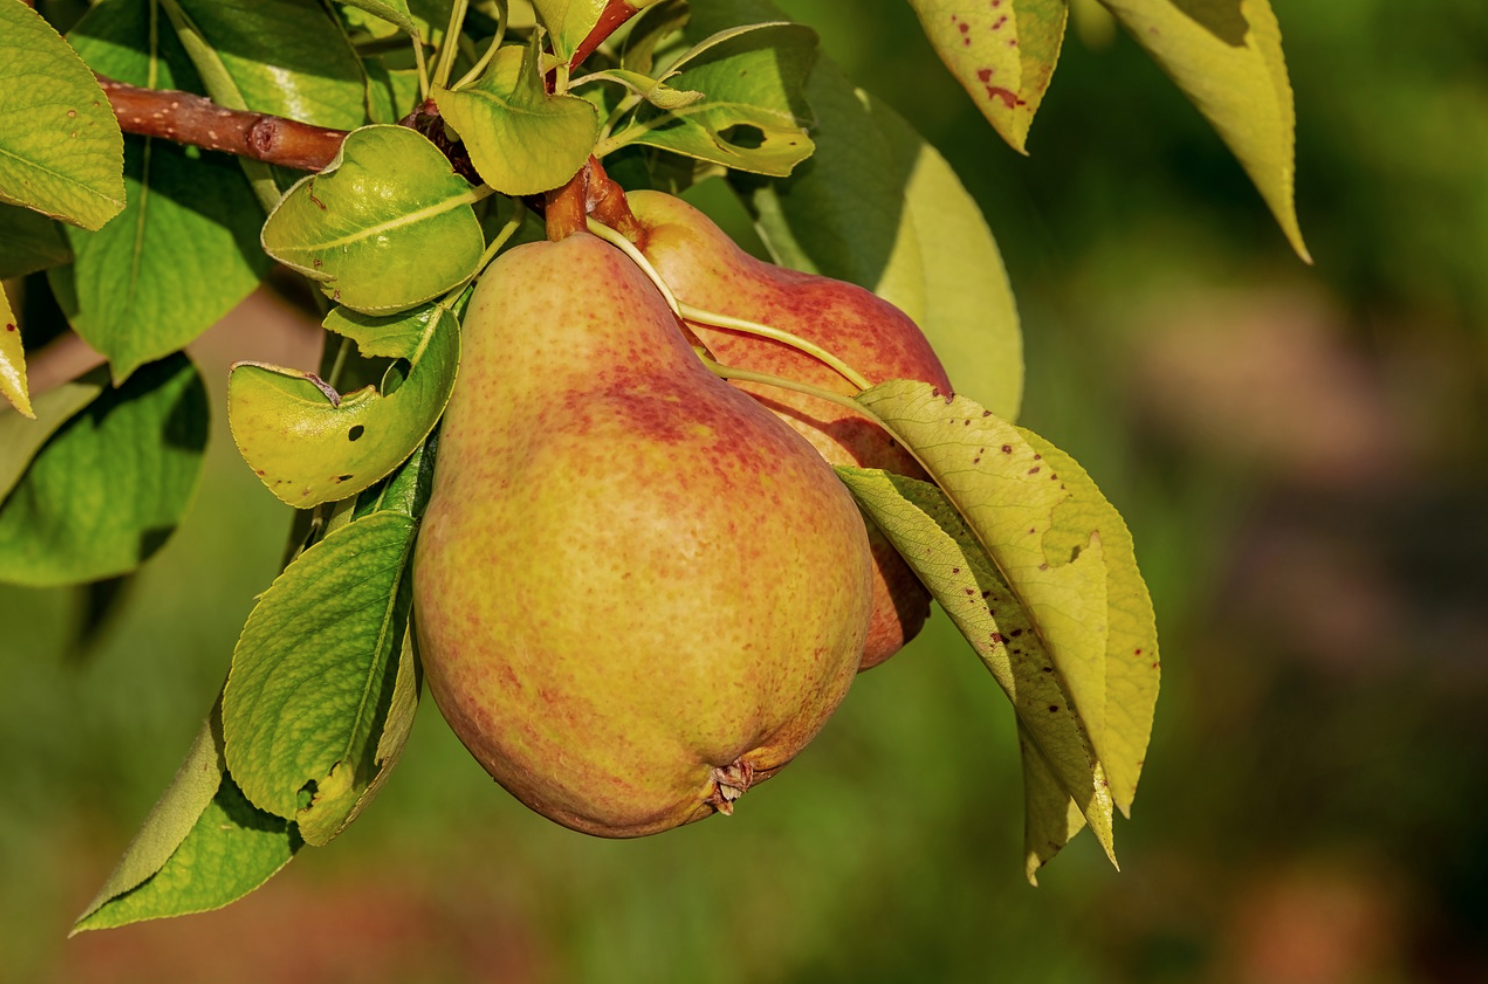 Random Fact- - Out of all of the fruits Palinka is made from, pear is the most popular flavor in Hungary.